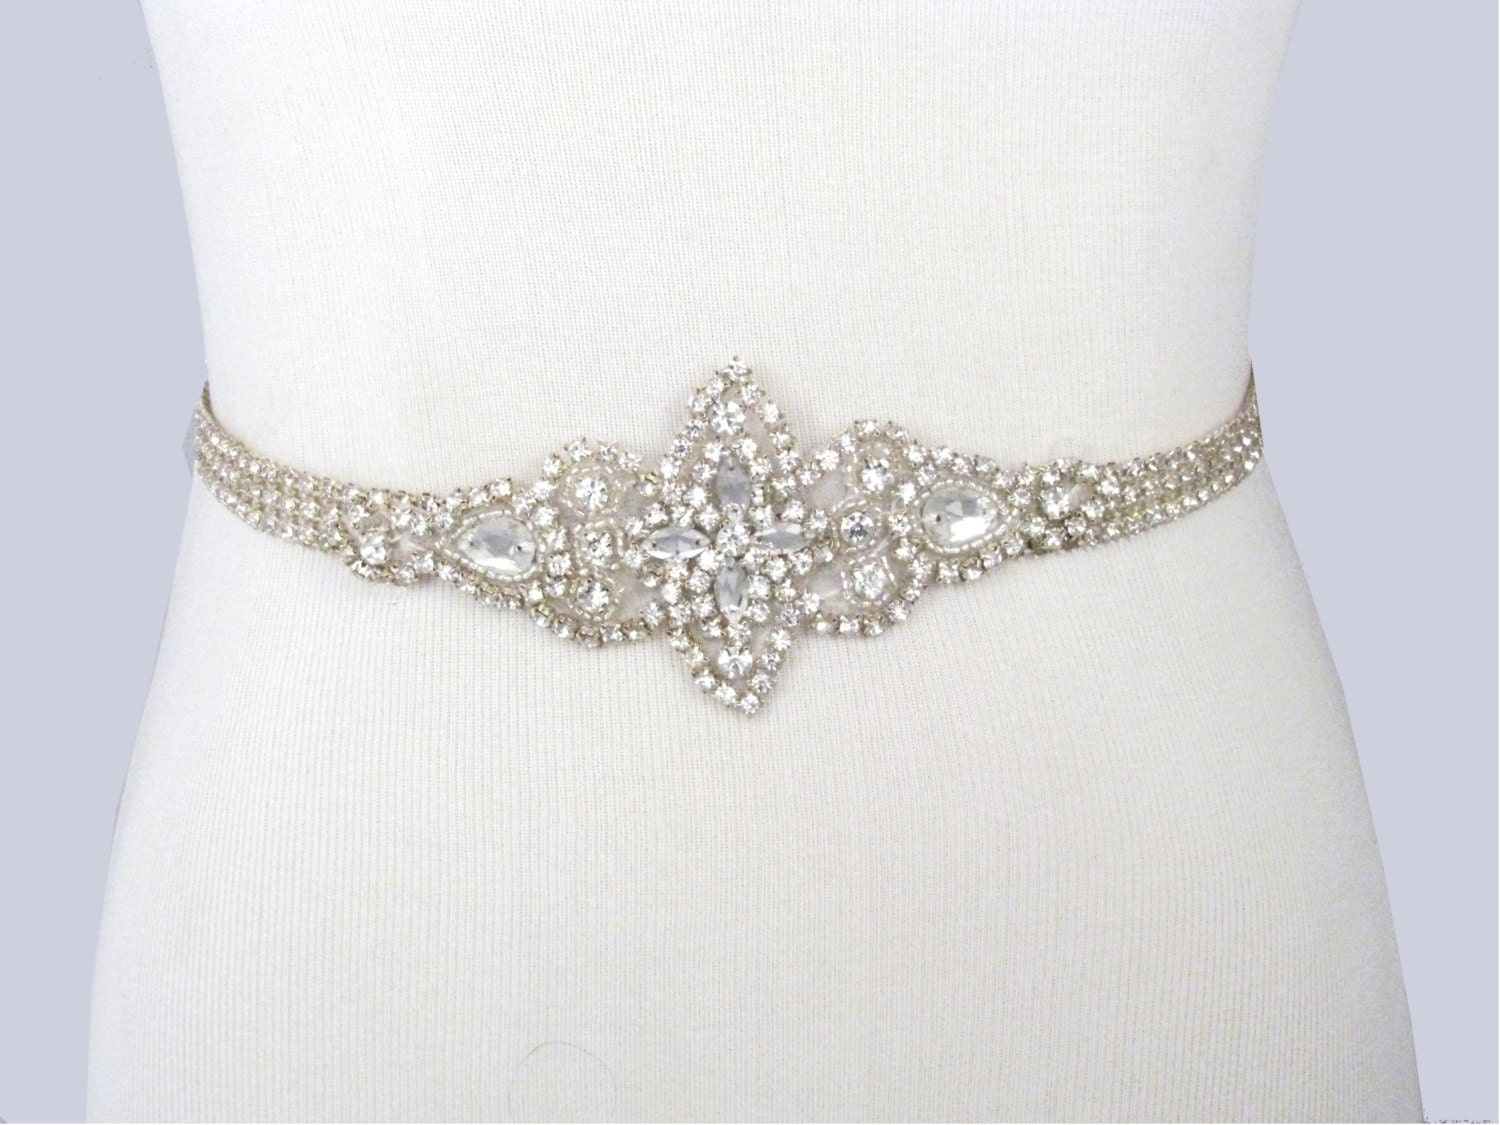 Wedding dress sash rhinestone bridal belt jeweled beaded for Rhinestone sash for wedding dress